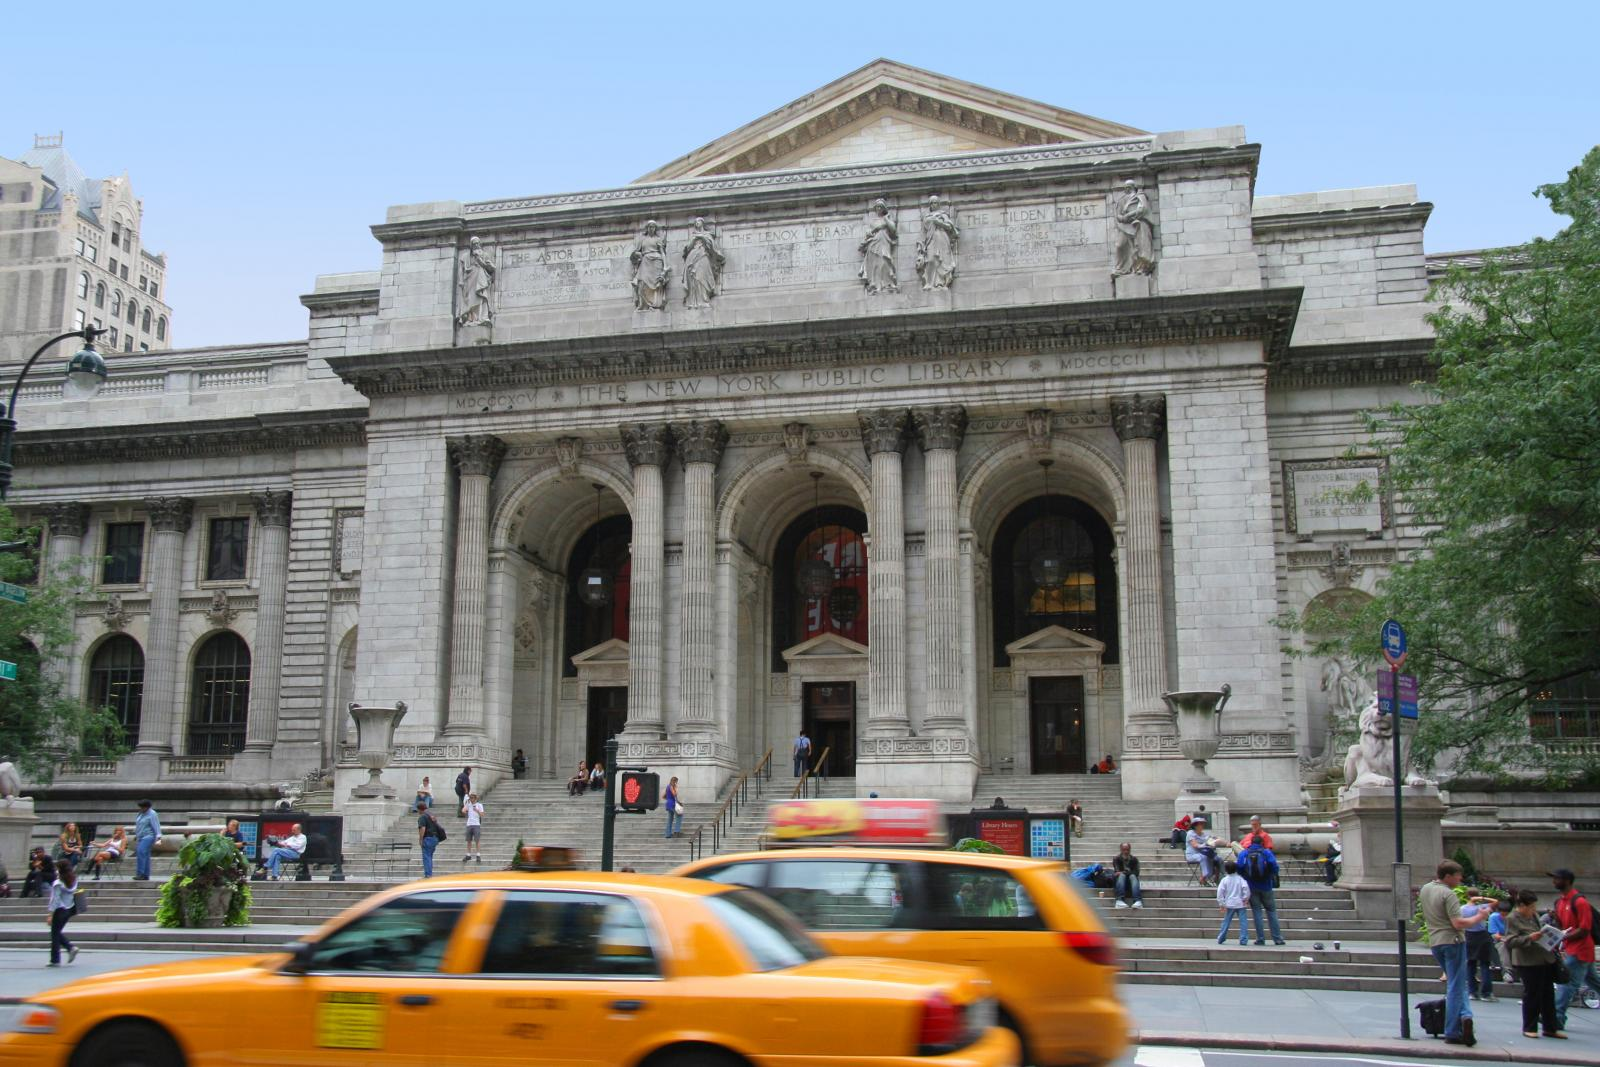 Top 10 FREE things to do NYC Public Library